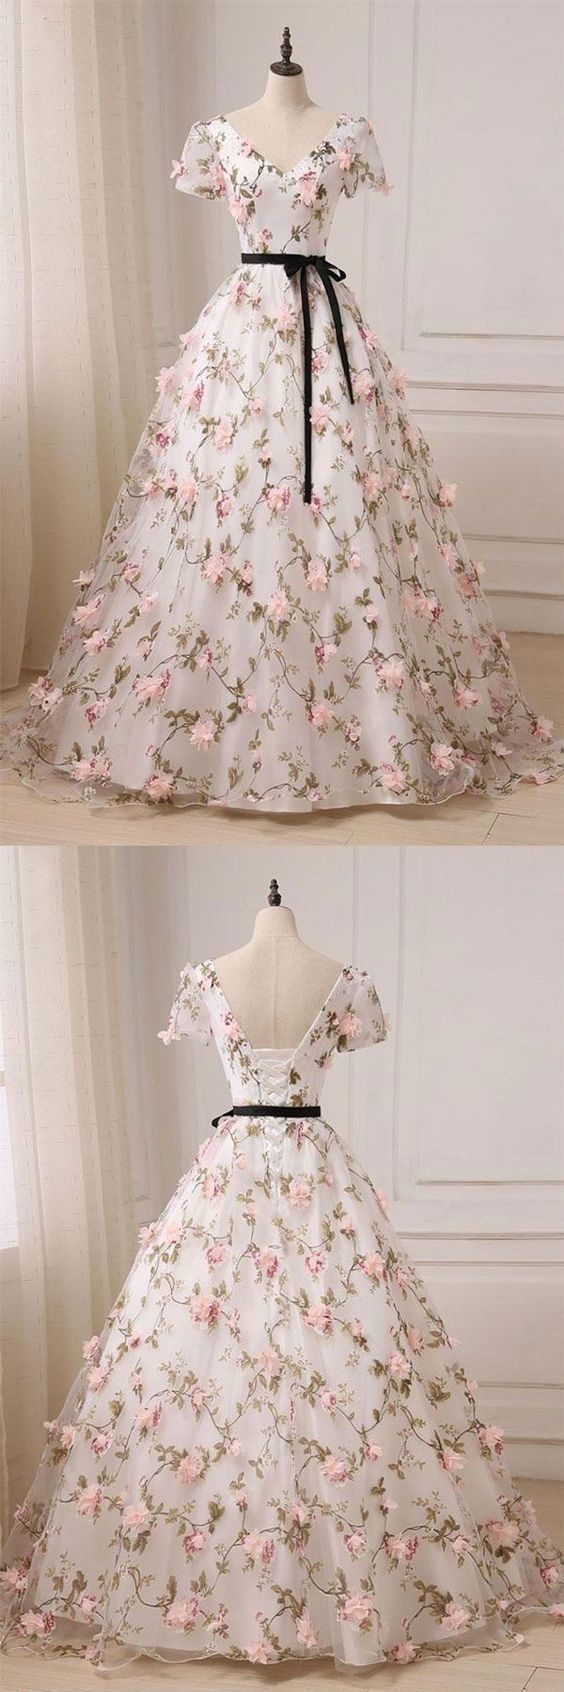 Floral Prom Dress,Short Sleeve Prom Dress,Tulle Evening Dress, Formal Women